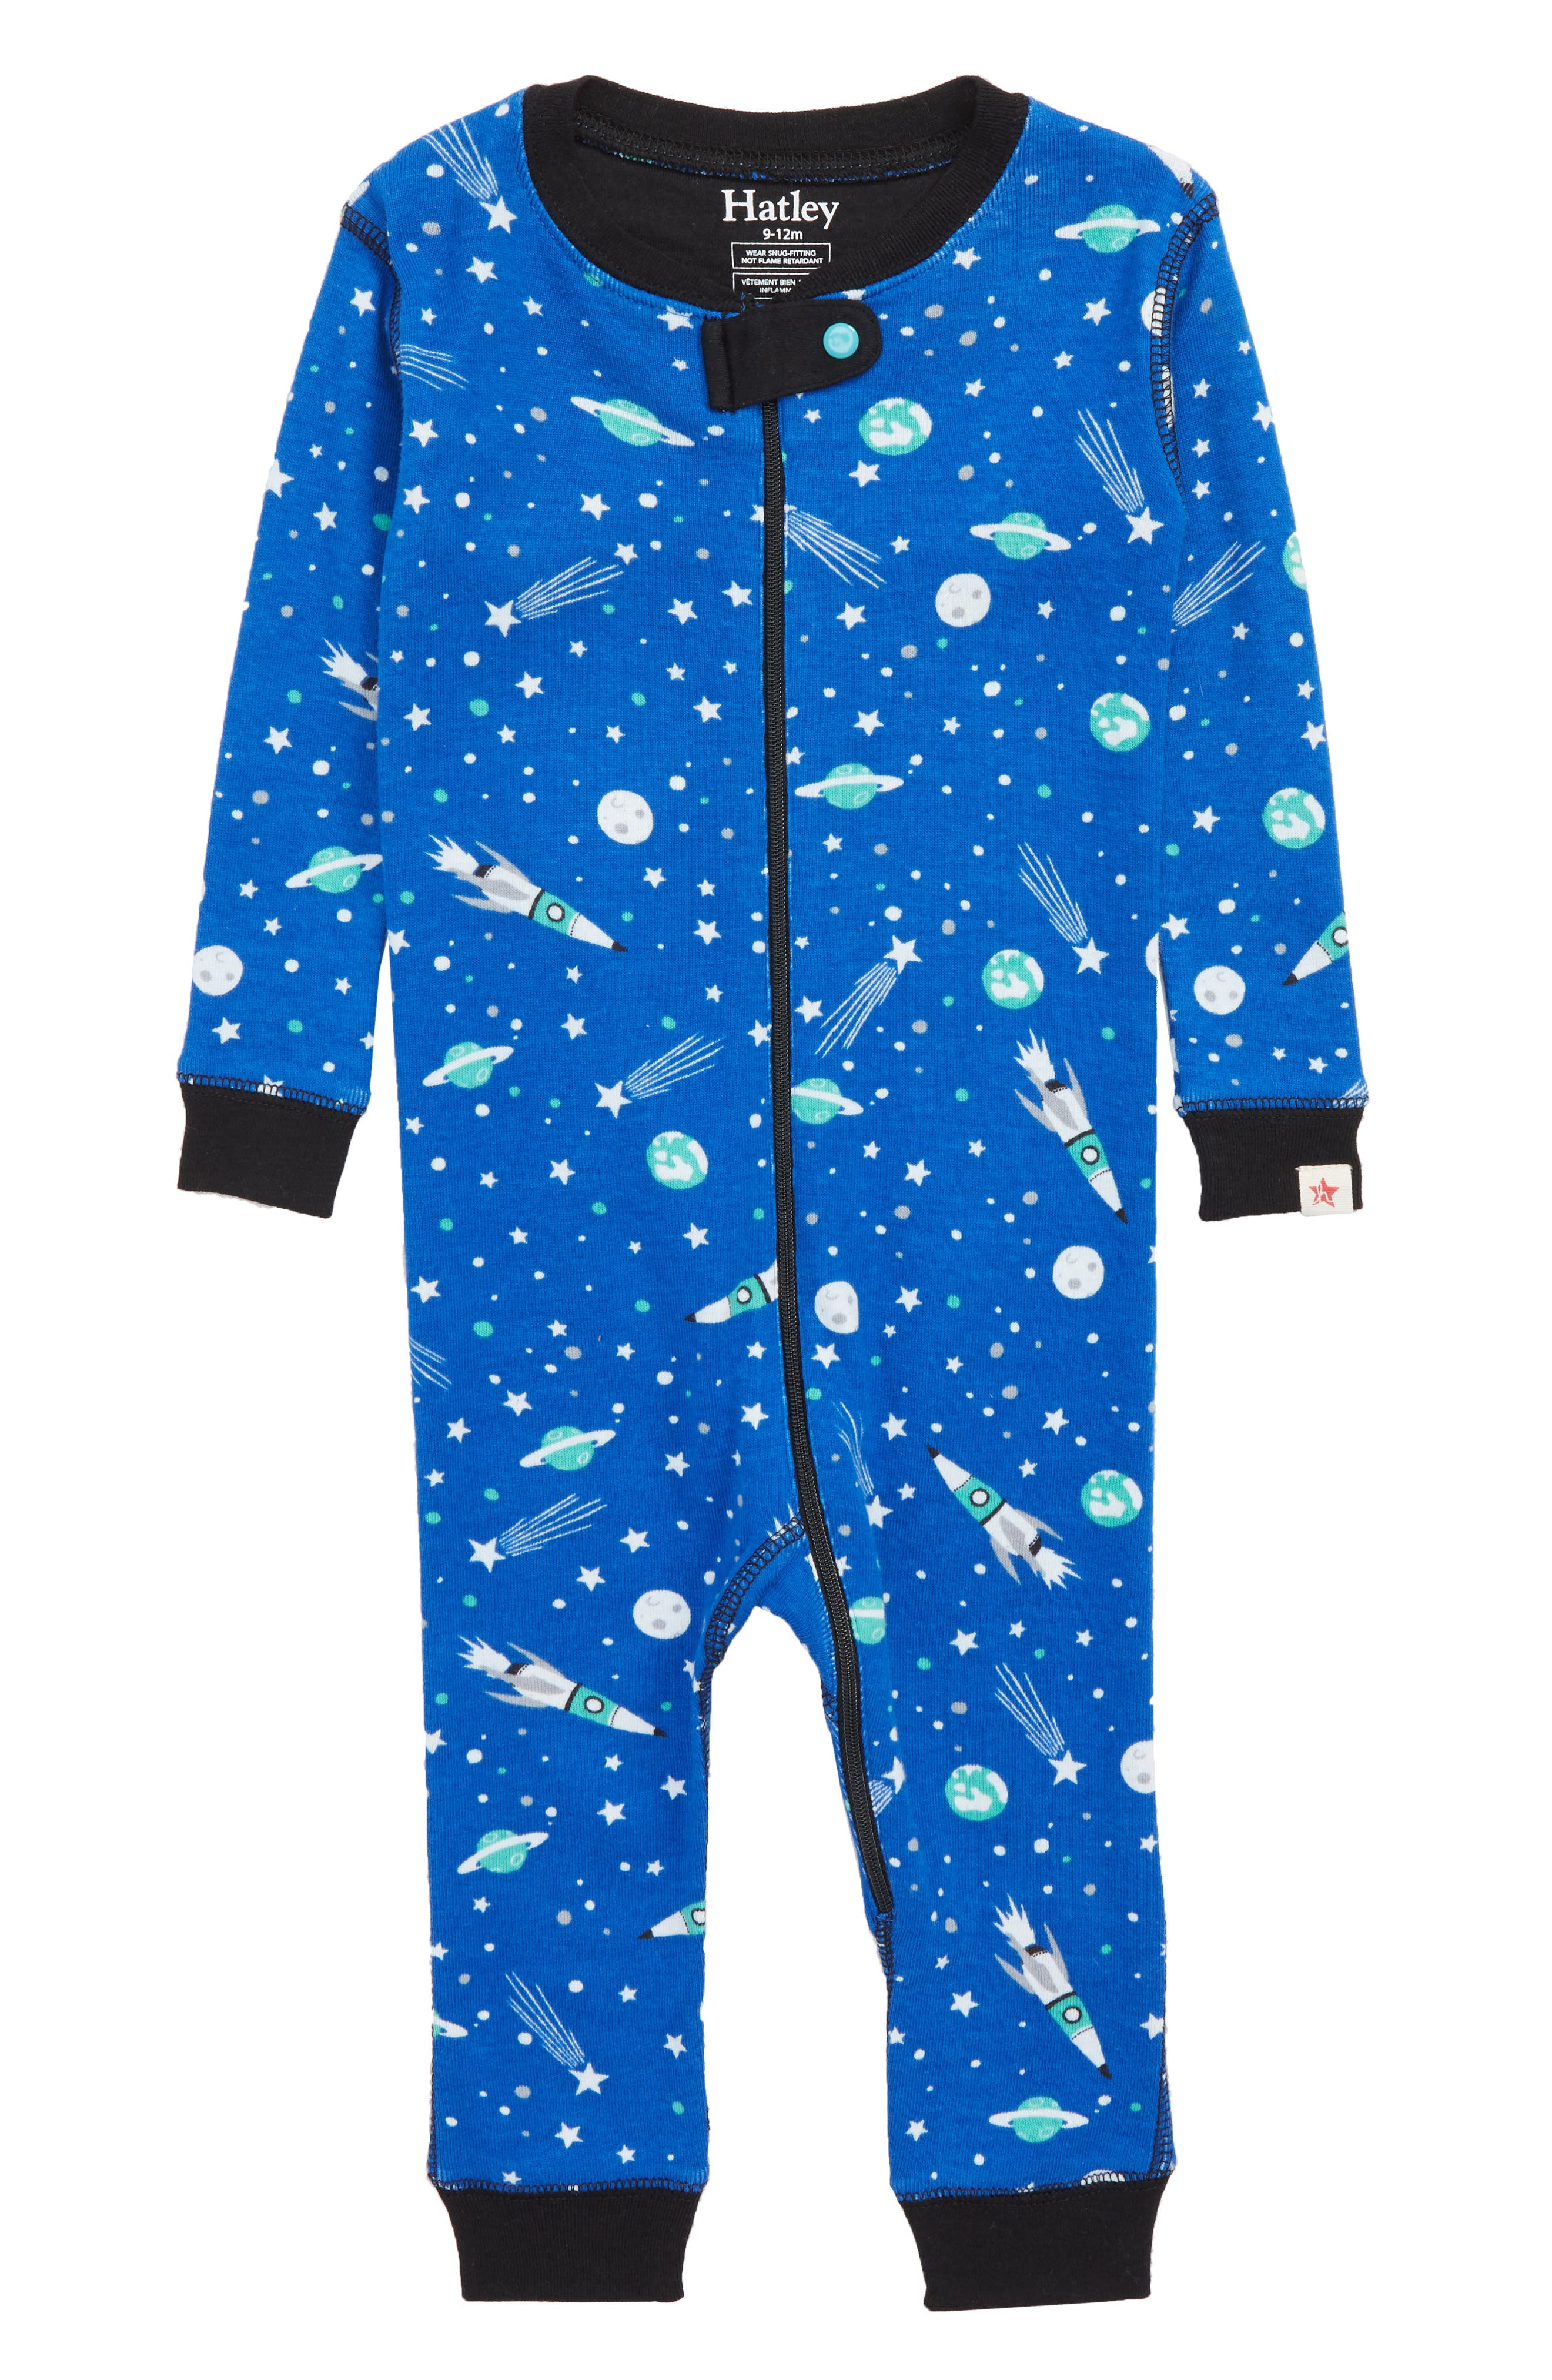 HATLEY Organic Cotton Fitted One-Piece Pajamas, Main, color, 400